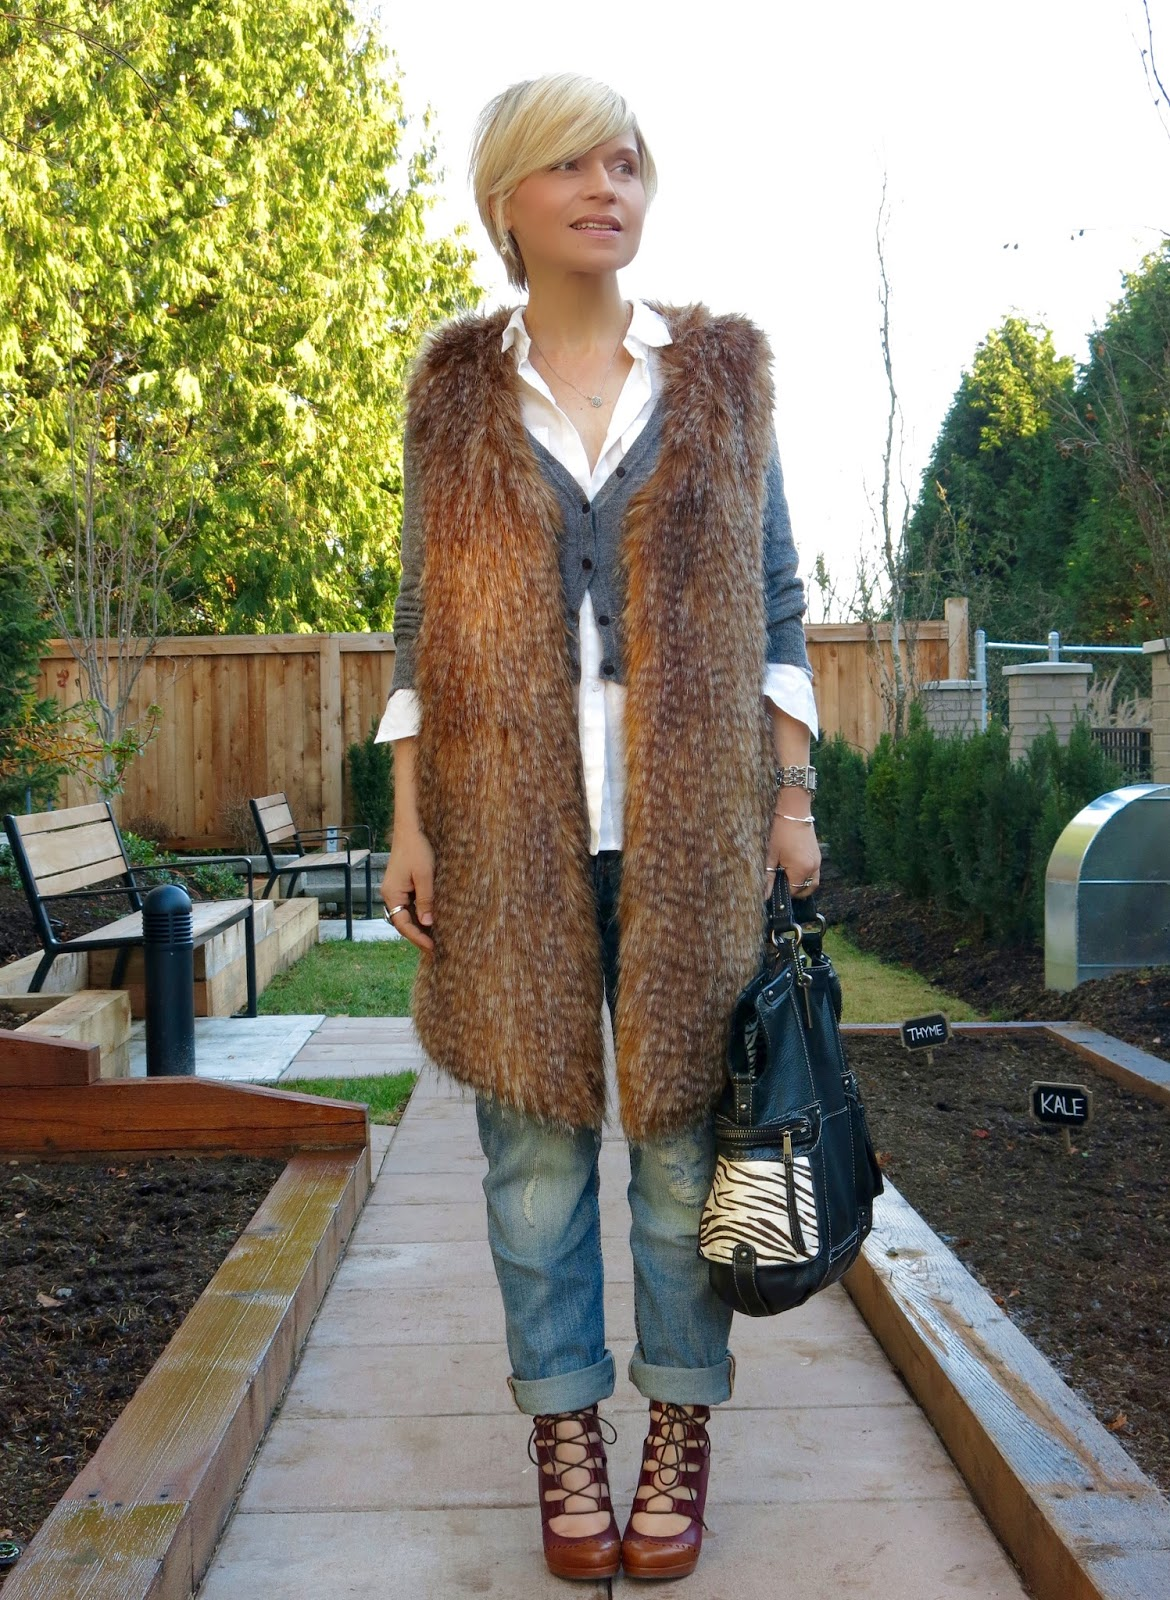 styling boyfriend jeans with a white shirt, shrunken cardigan, furry vest, and lace-up shoes